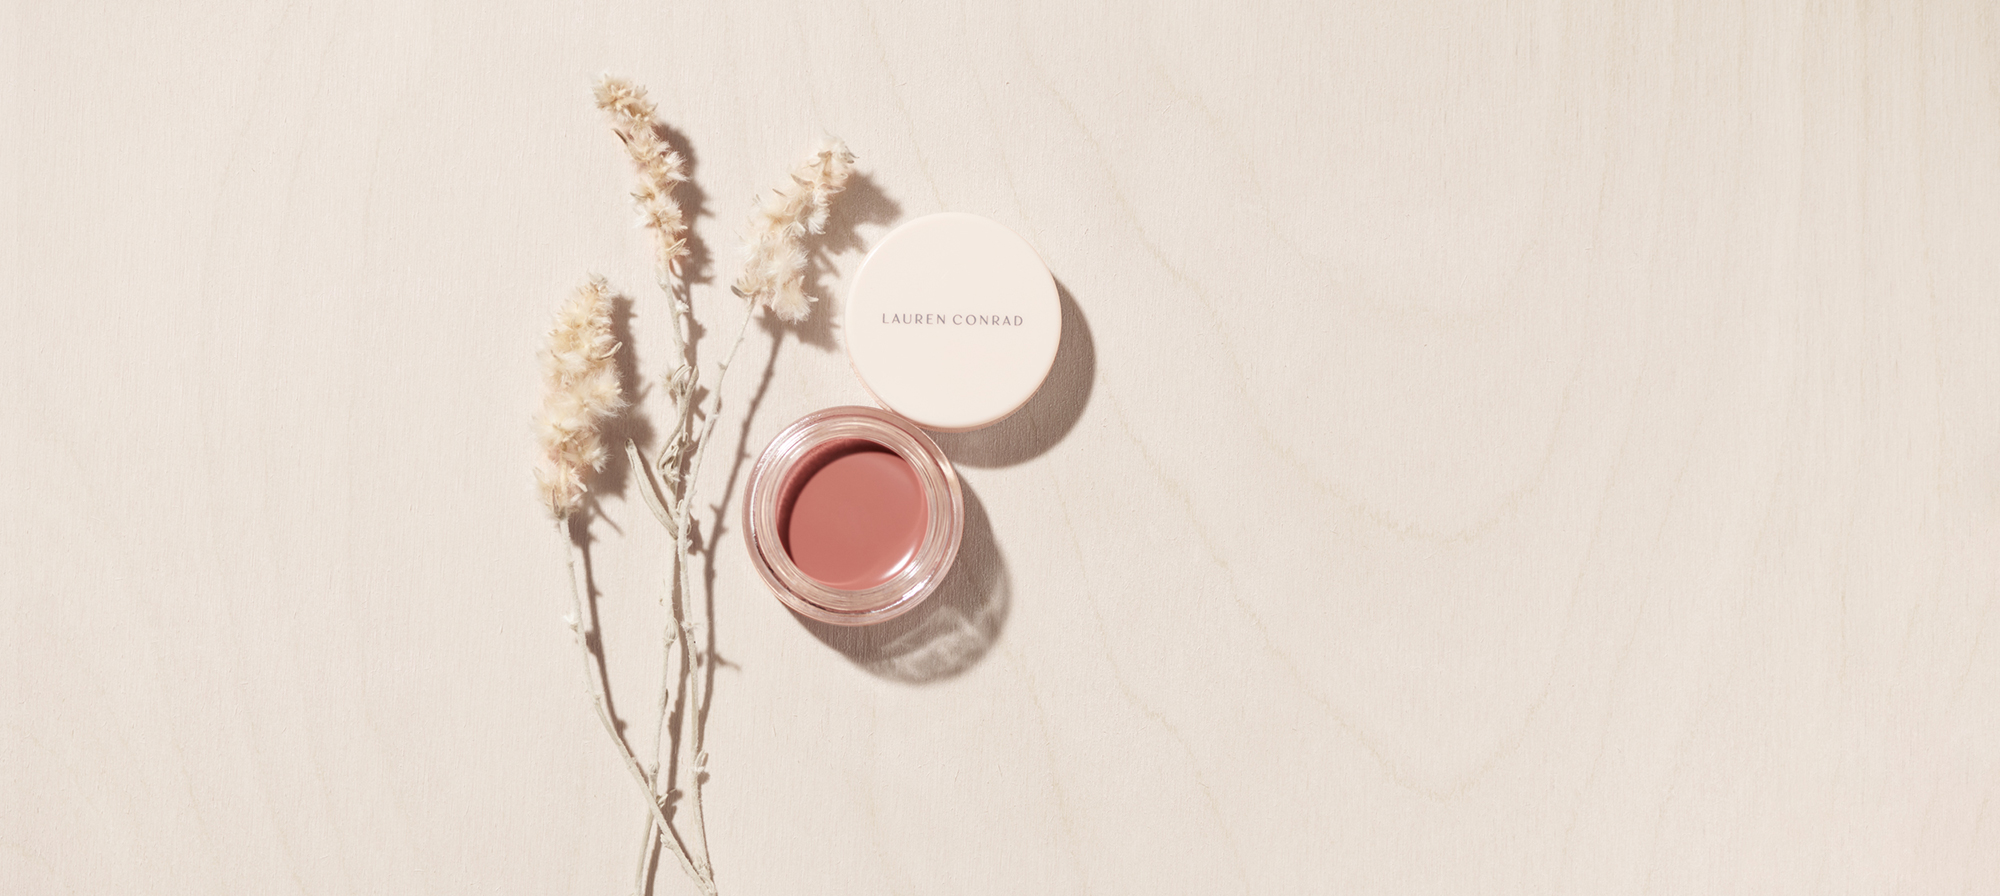 Meet The Lip & Cheek Tint From Lauren Conrad Beauty